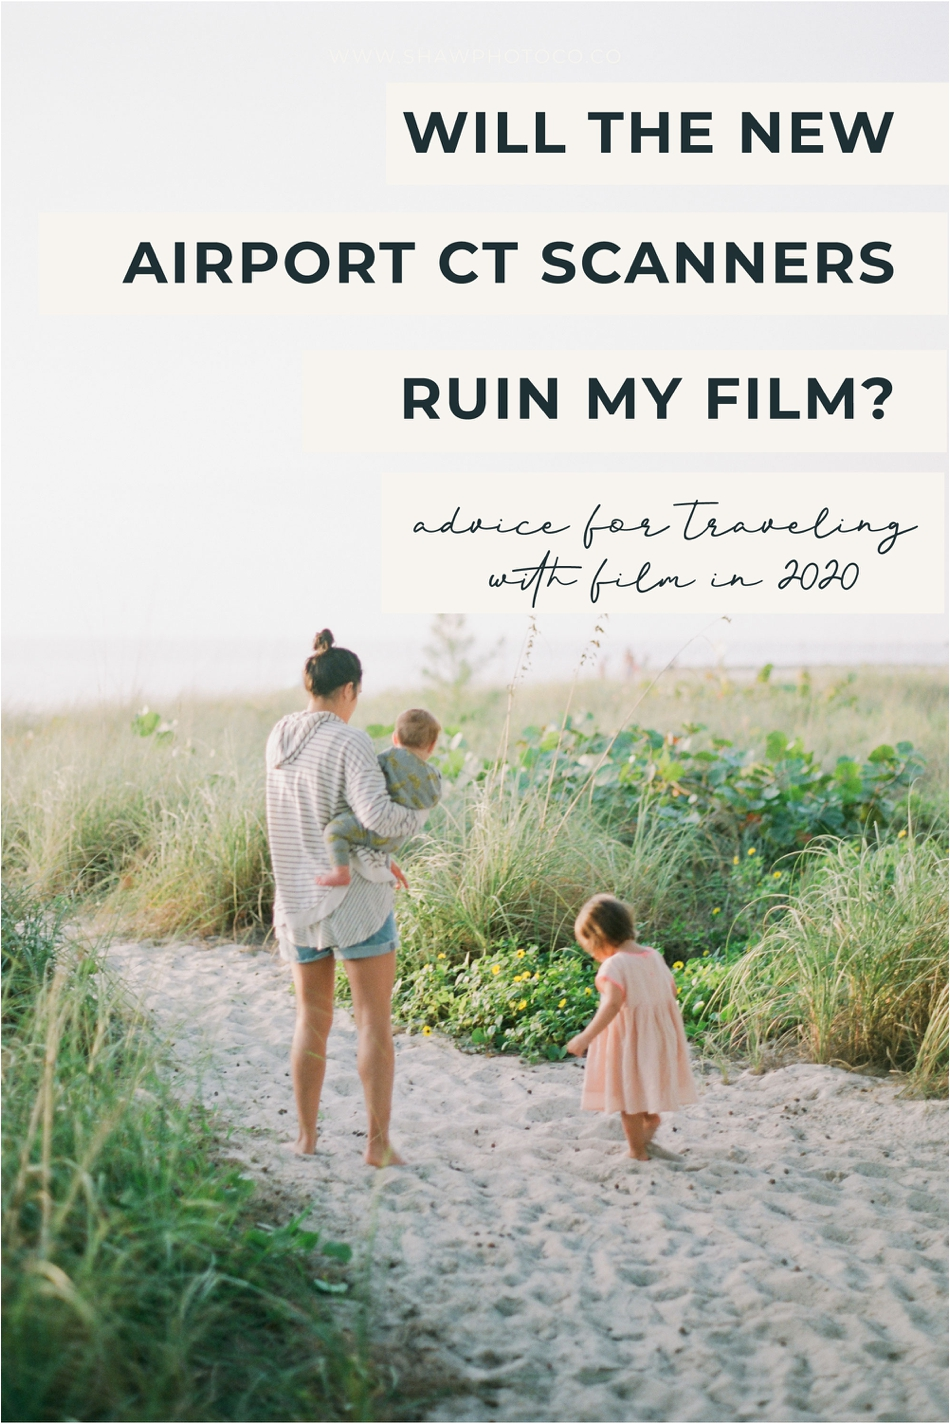 Is My Film Ruined If it Goes Through the New Airport Scanners on Accident? | Shaw Photo Co.